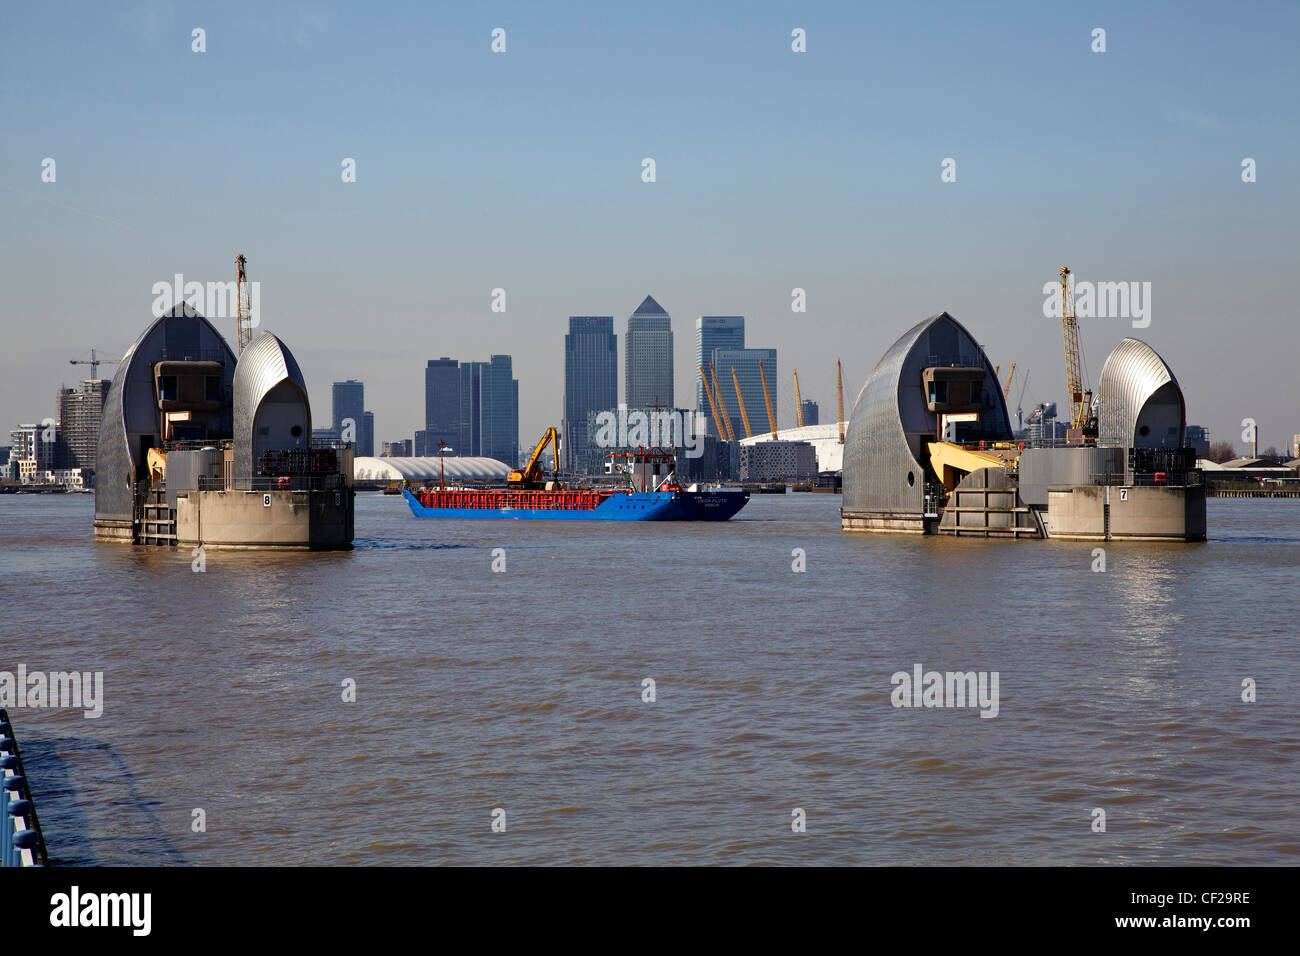 View over the River Thames of the Thames Barrier, O2 and skyscrapers in Canary Wharf. - Stock Image